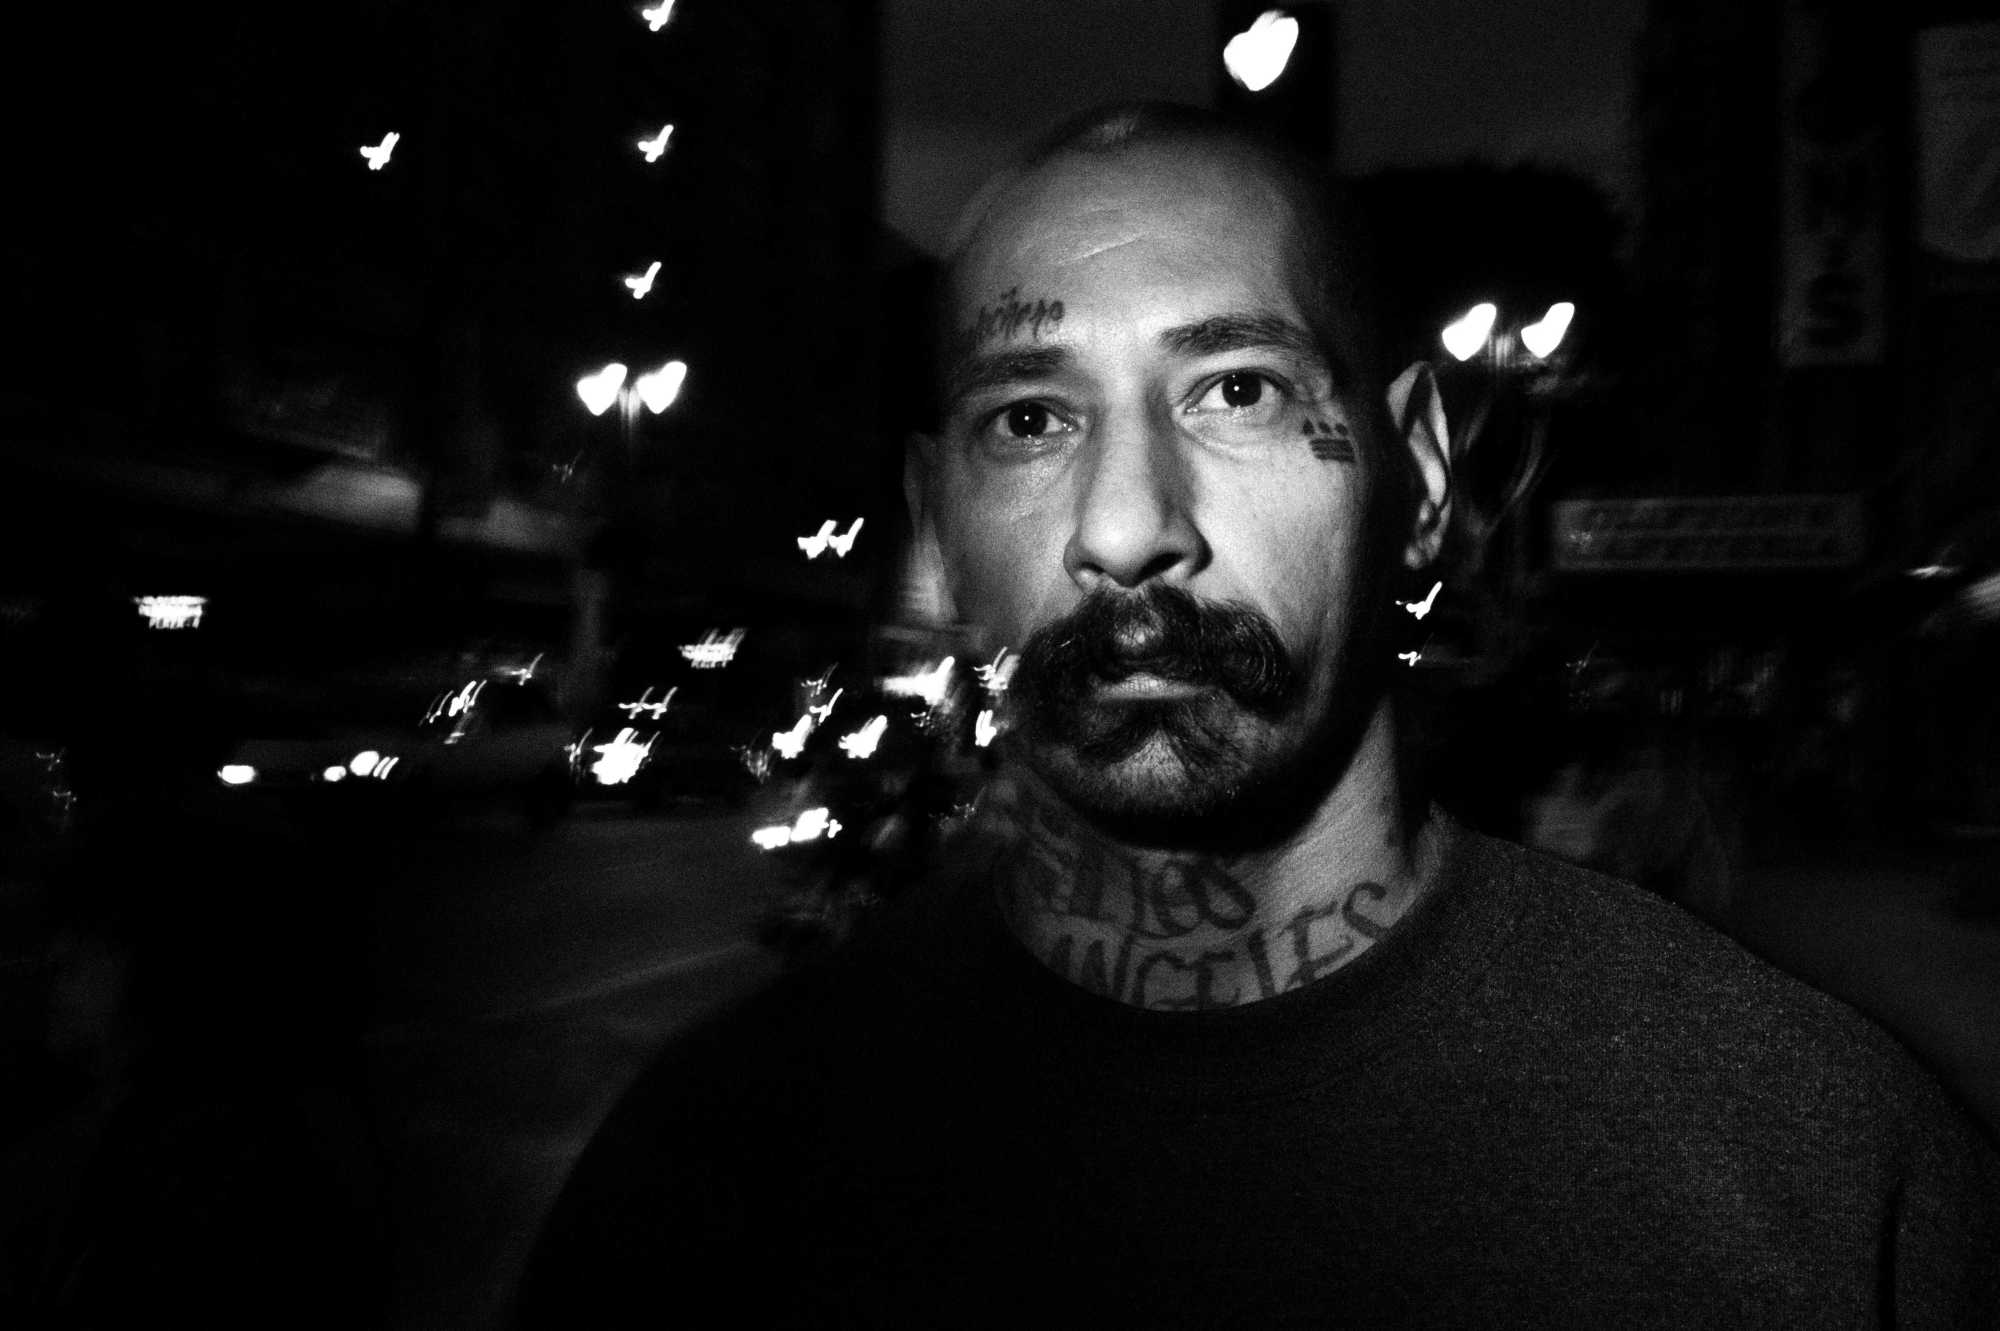 eric-kim-street-photography-the-city-of-angels-black-and-white-4-street-portrait-hearts-tattoo-downtown-la